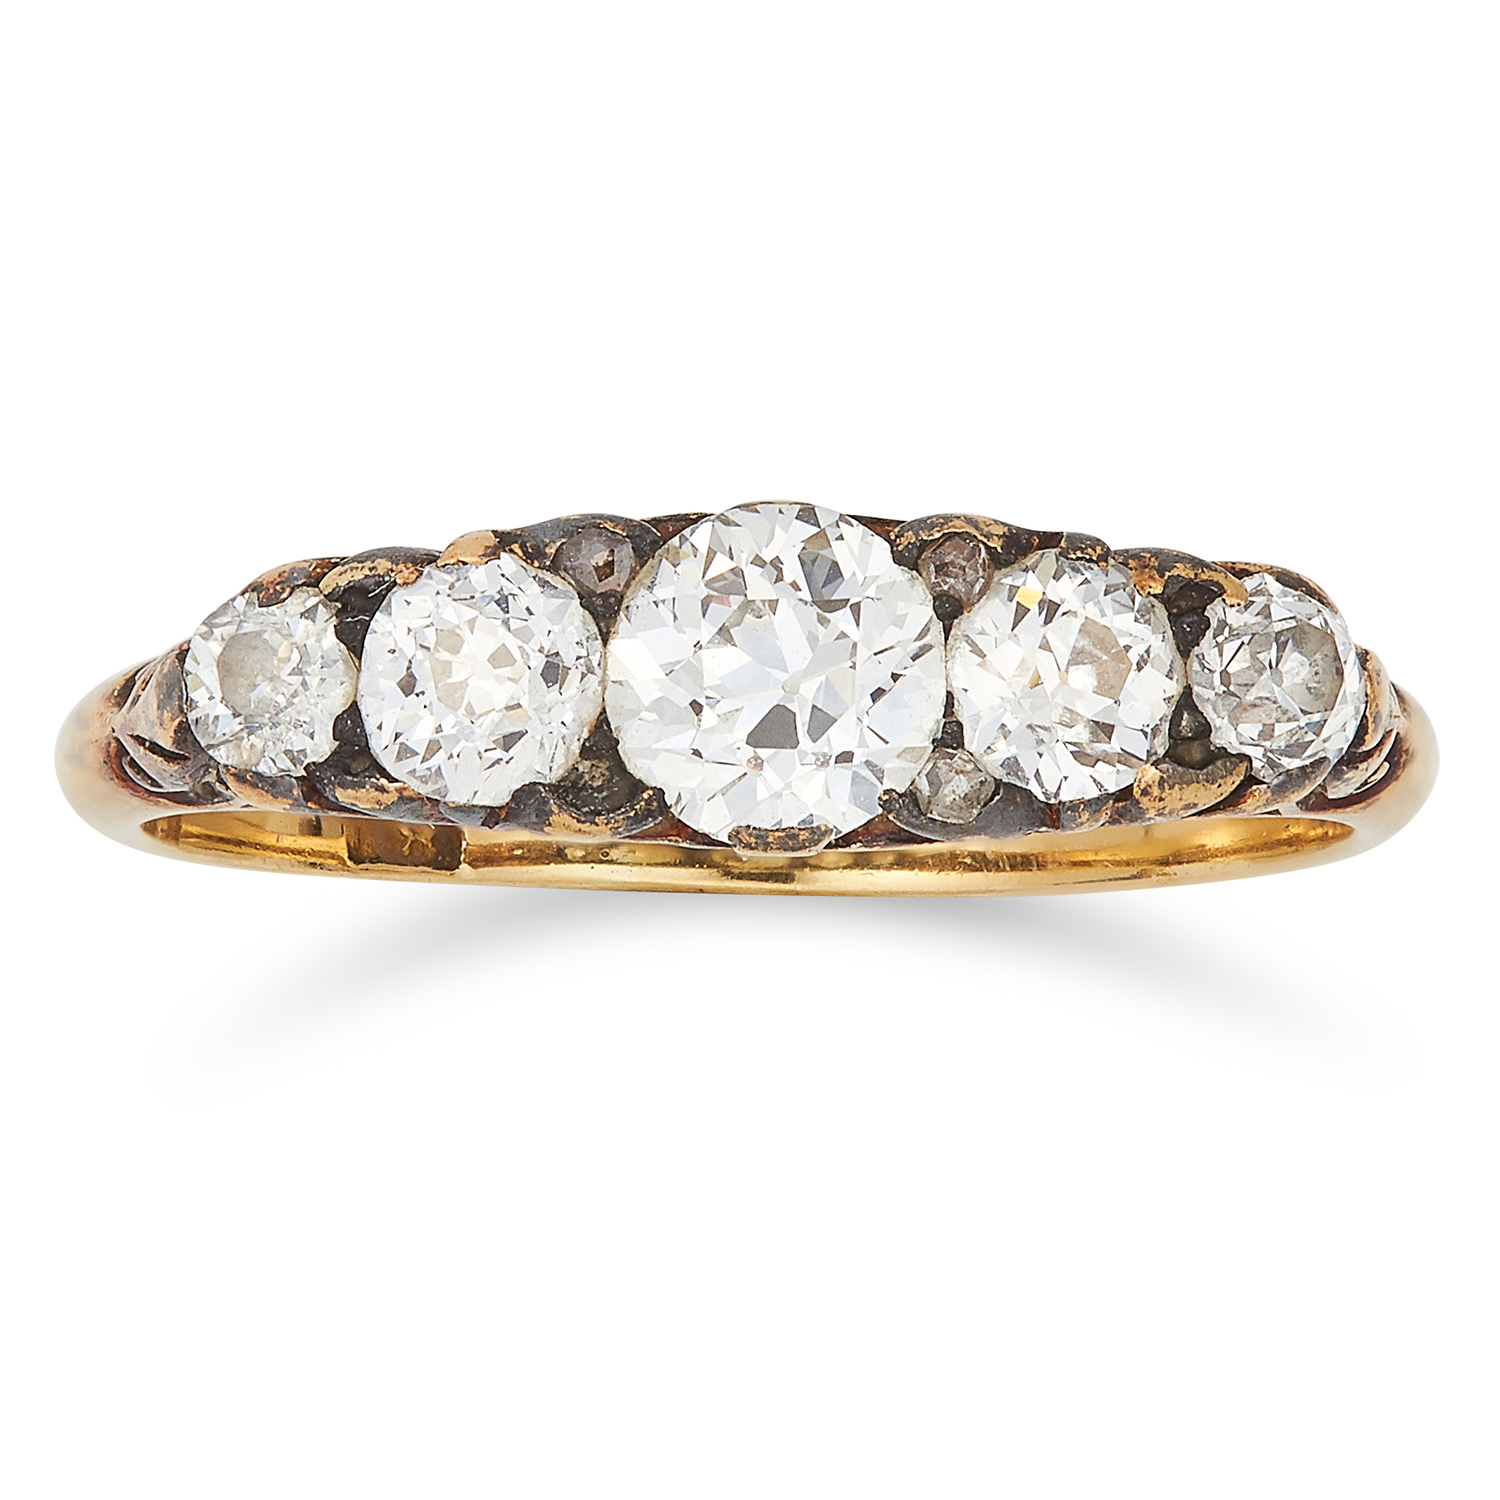 Los 31 - DIAMOND FIVE STONE RING set with round cut diamonds totalling approximately 0.75 carats, size M / 6,